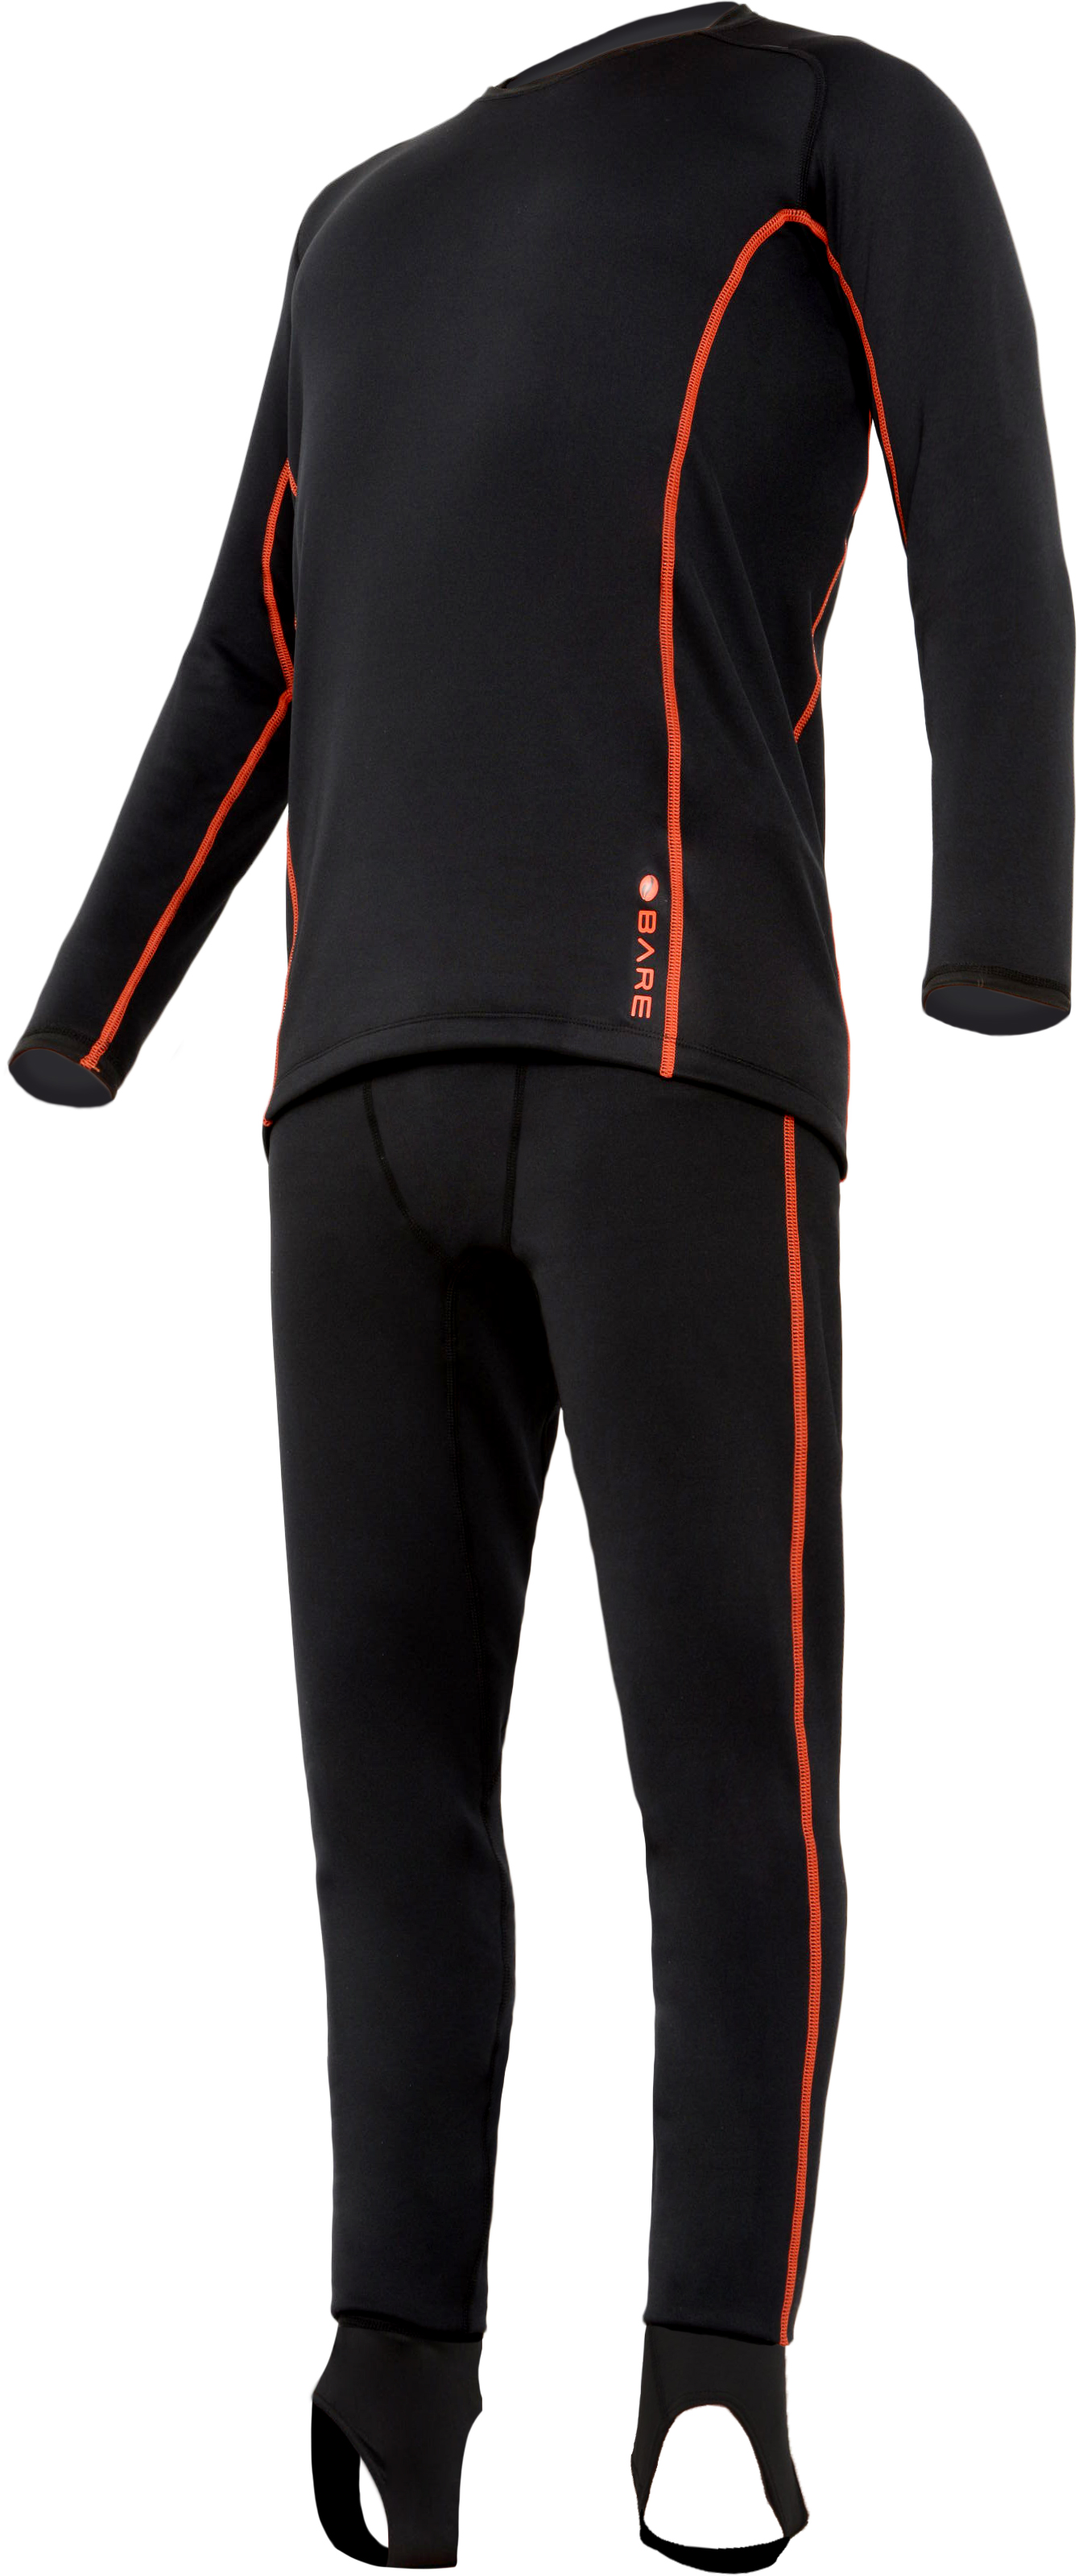 BARE Sports ULTRAWARMTH BASE LAYER TOP & PANNTS MEN